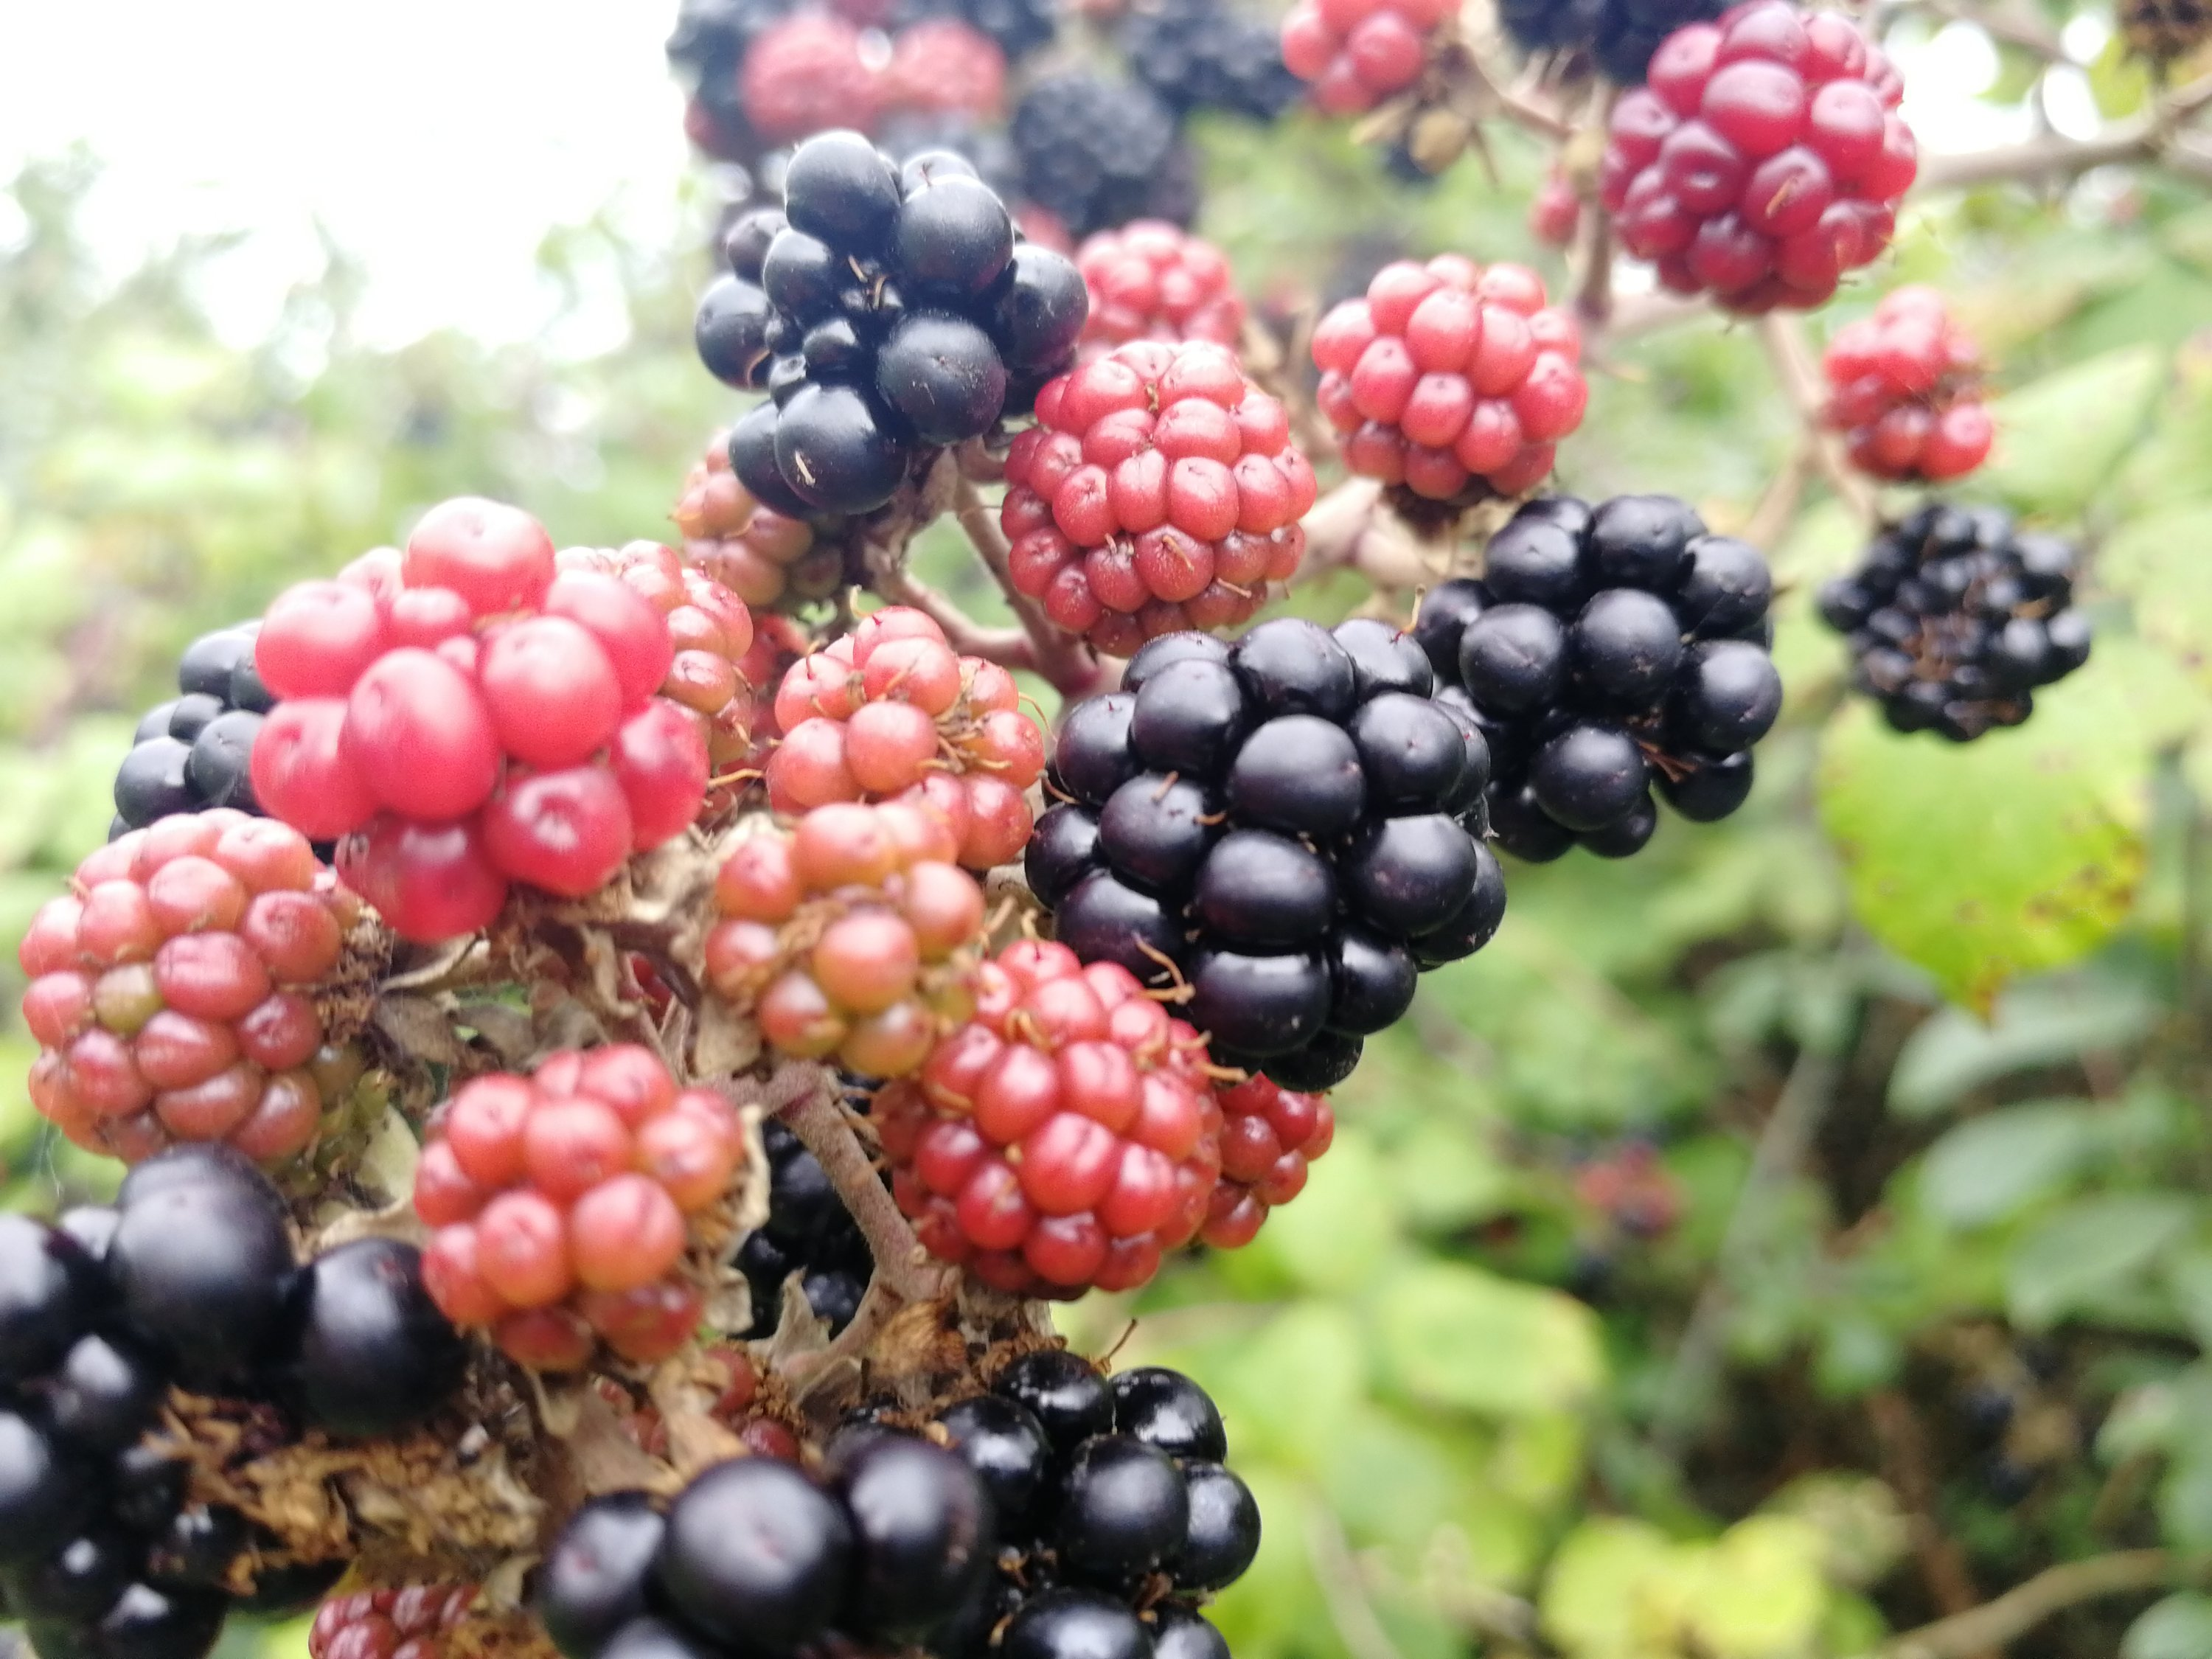 Blackberries, foraging, jam, syrups, jellies